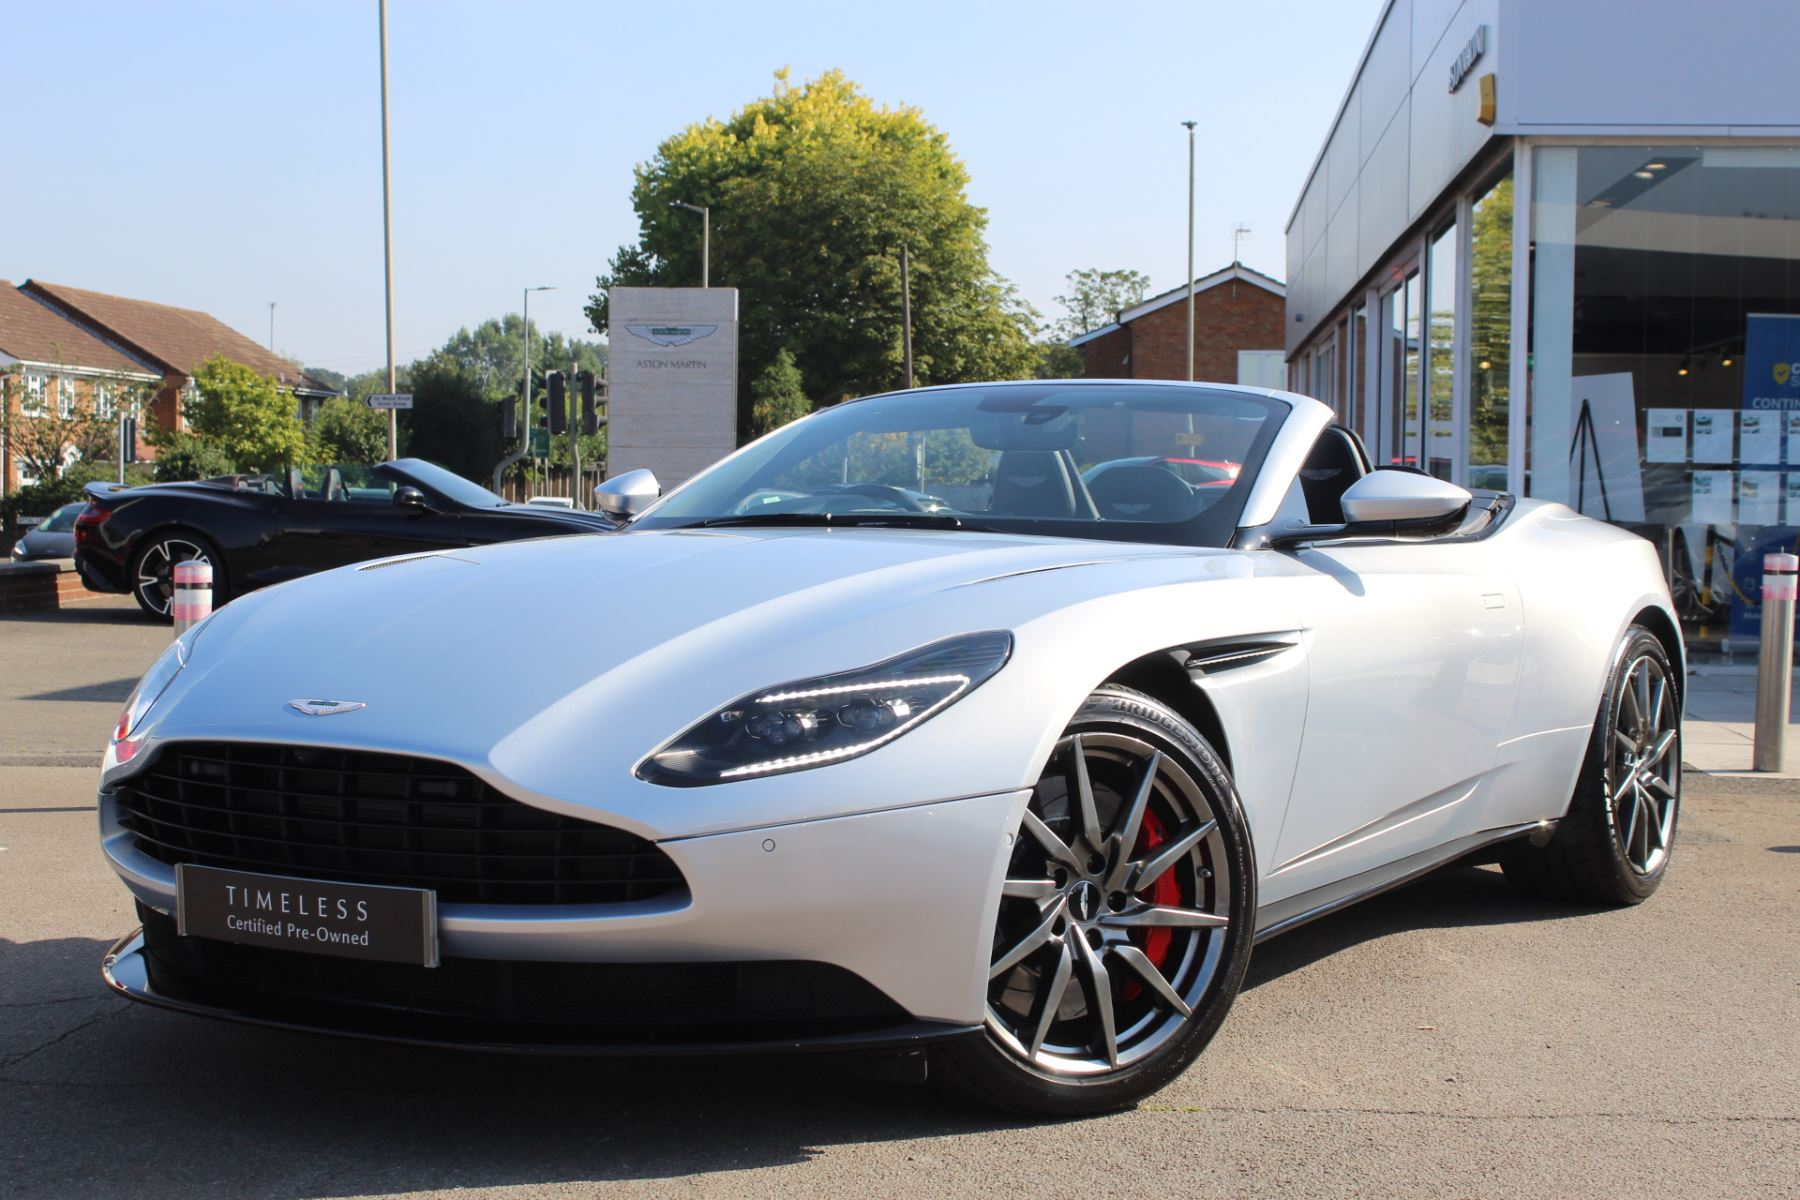 Aston Martin DB11 V8 Volante Touchtronic - Full Front End PPF Wrap 4.0 Automatic 2 door Convertible